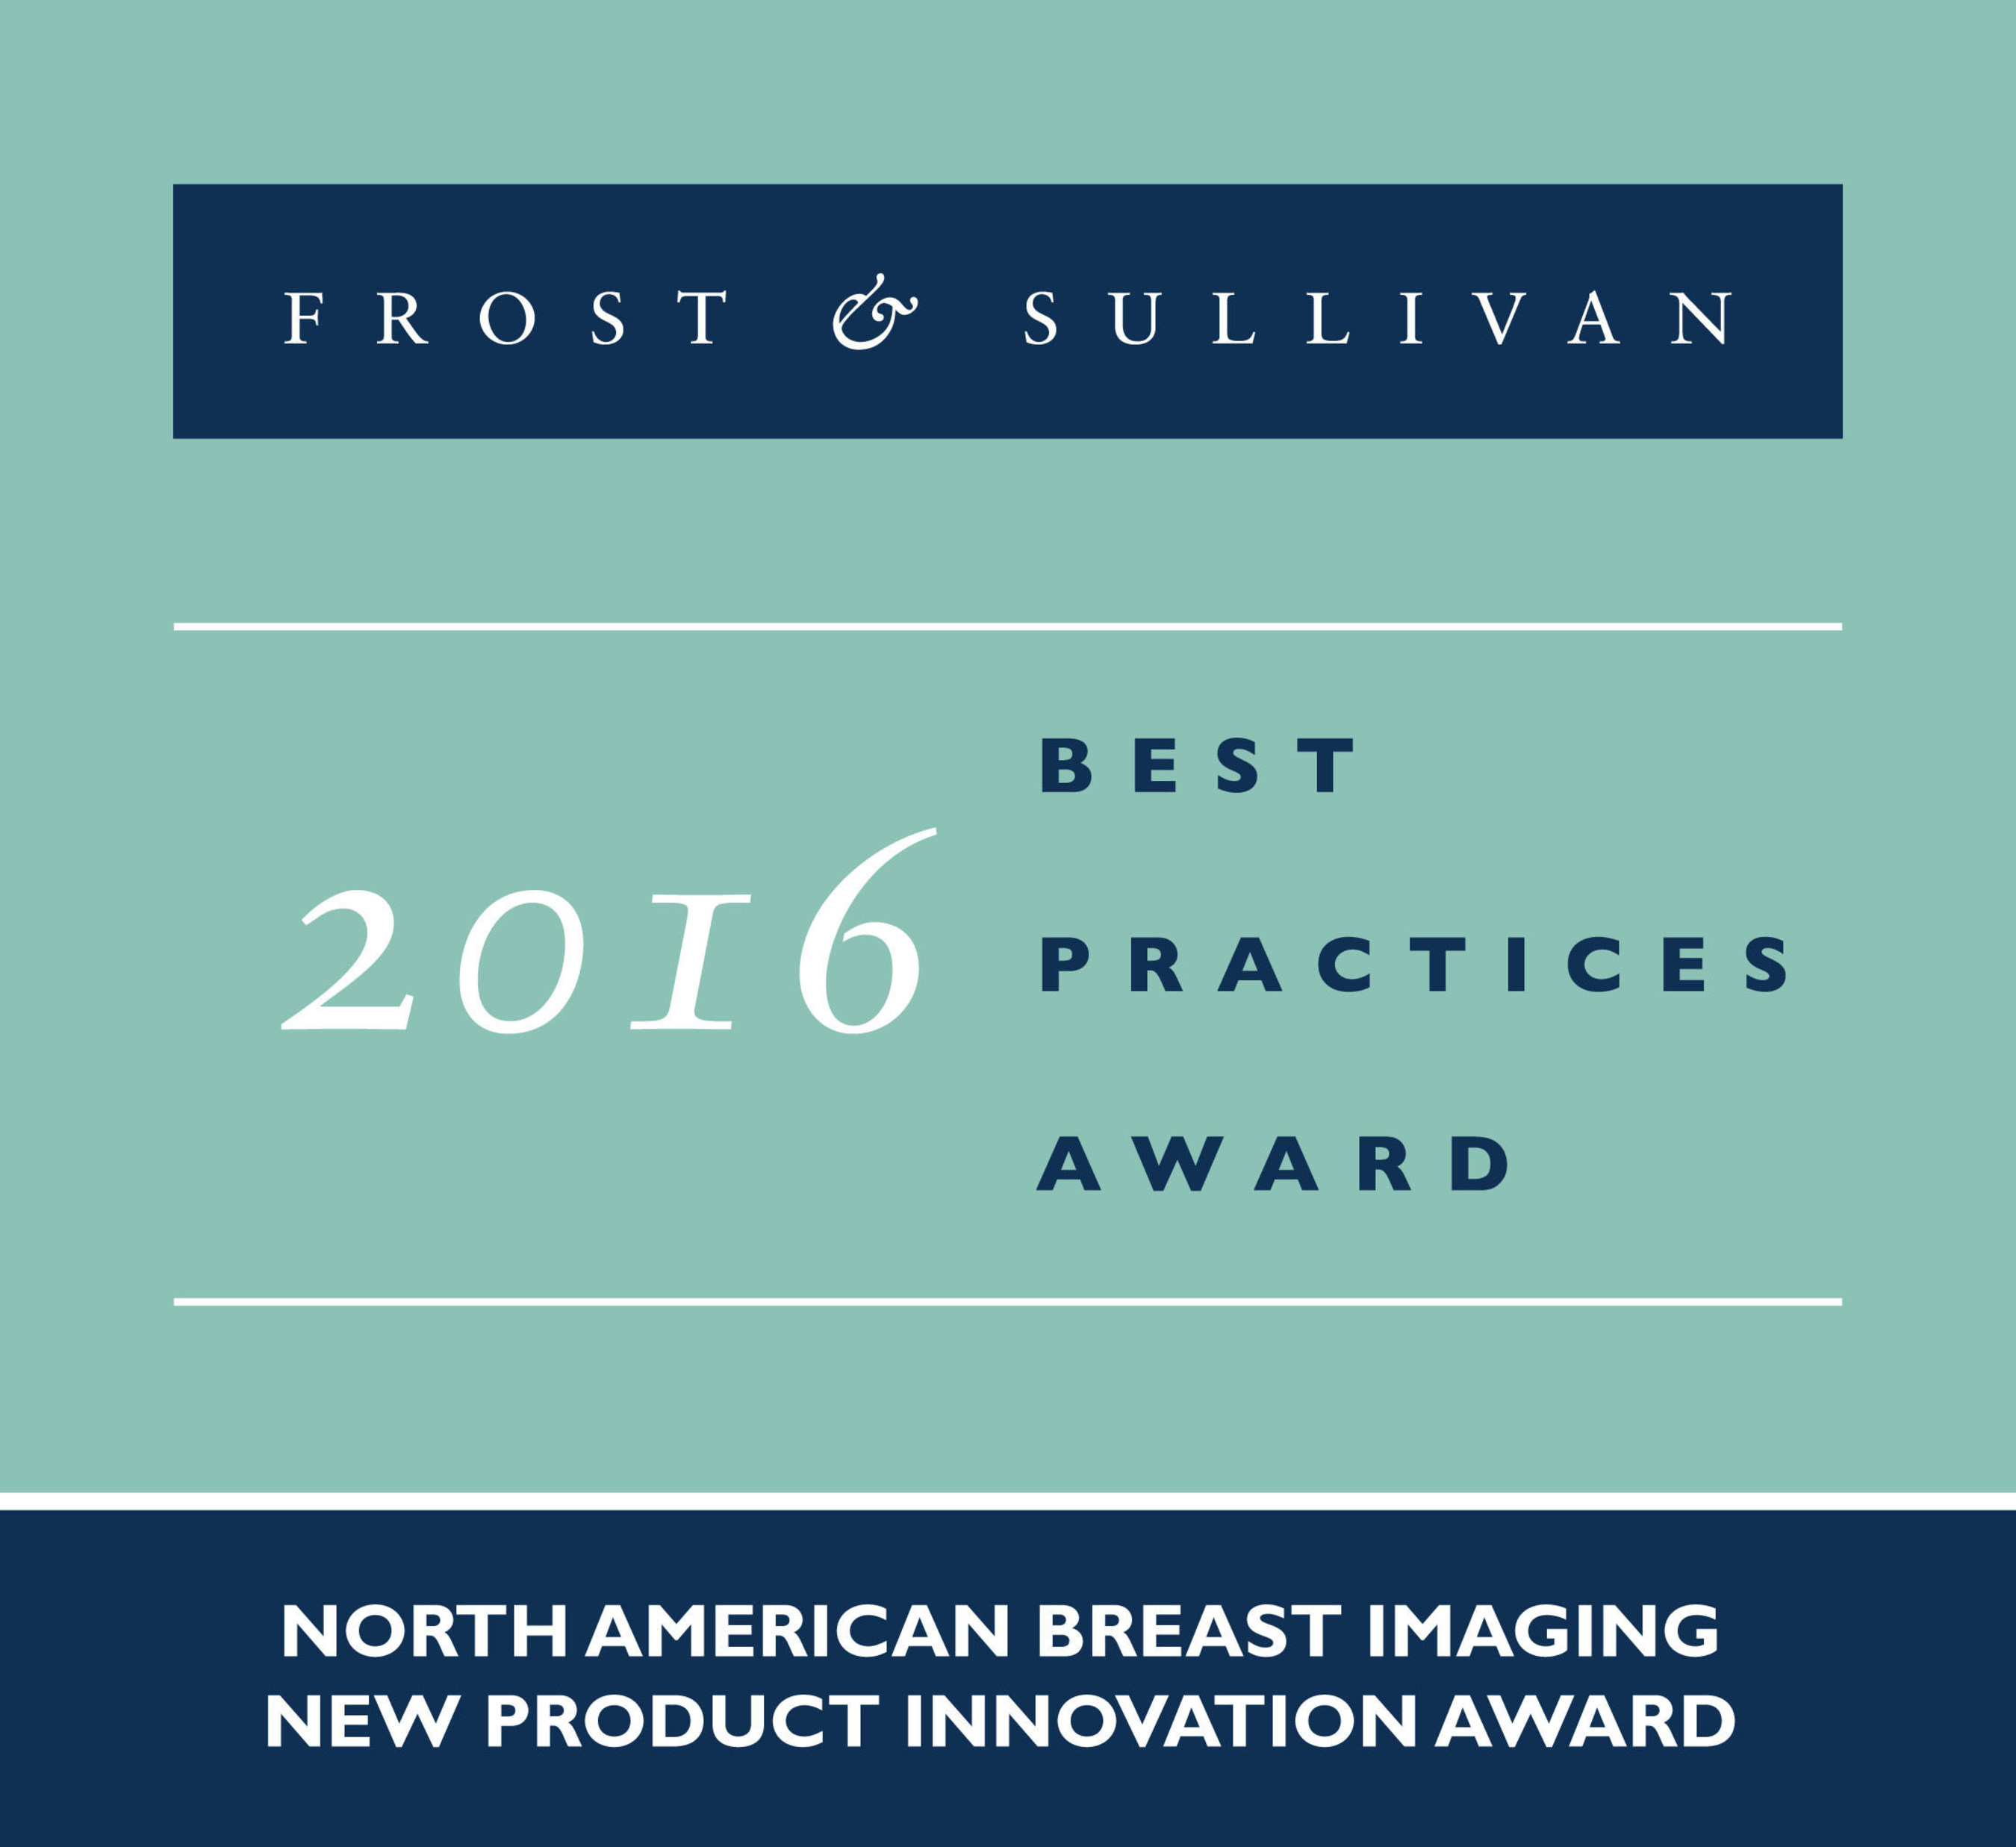 Koning Corporation Receives 2016 North American Breast Imaging New Product Innovation Award